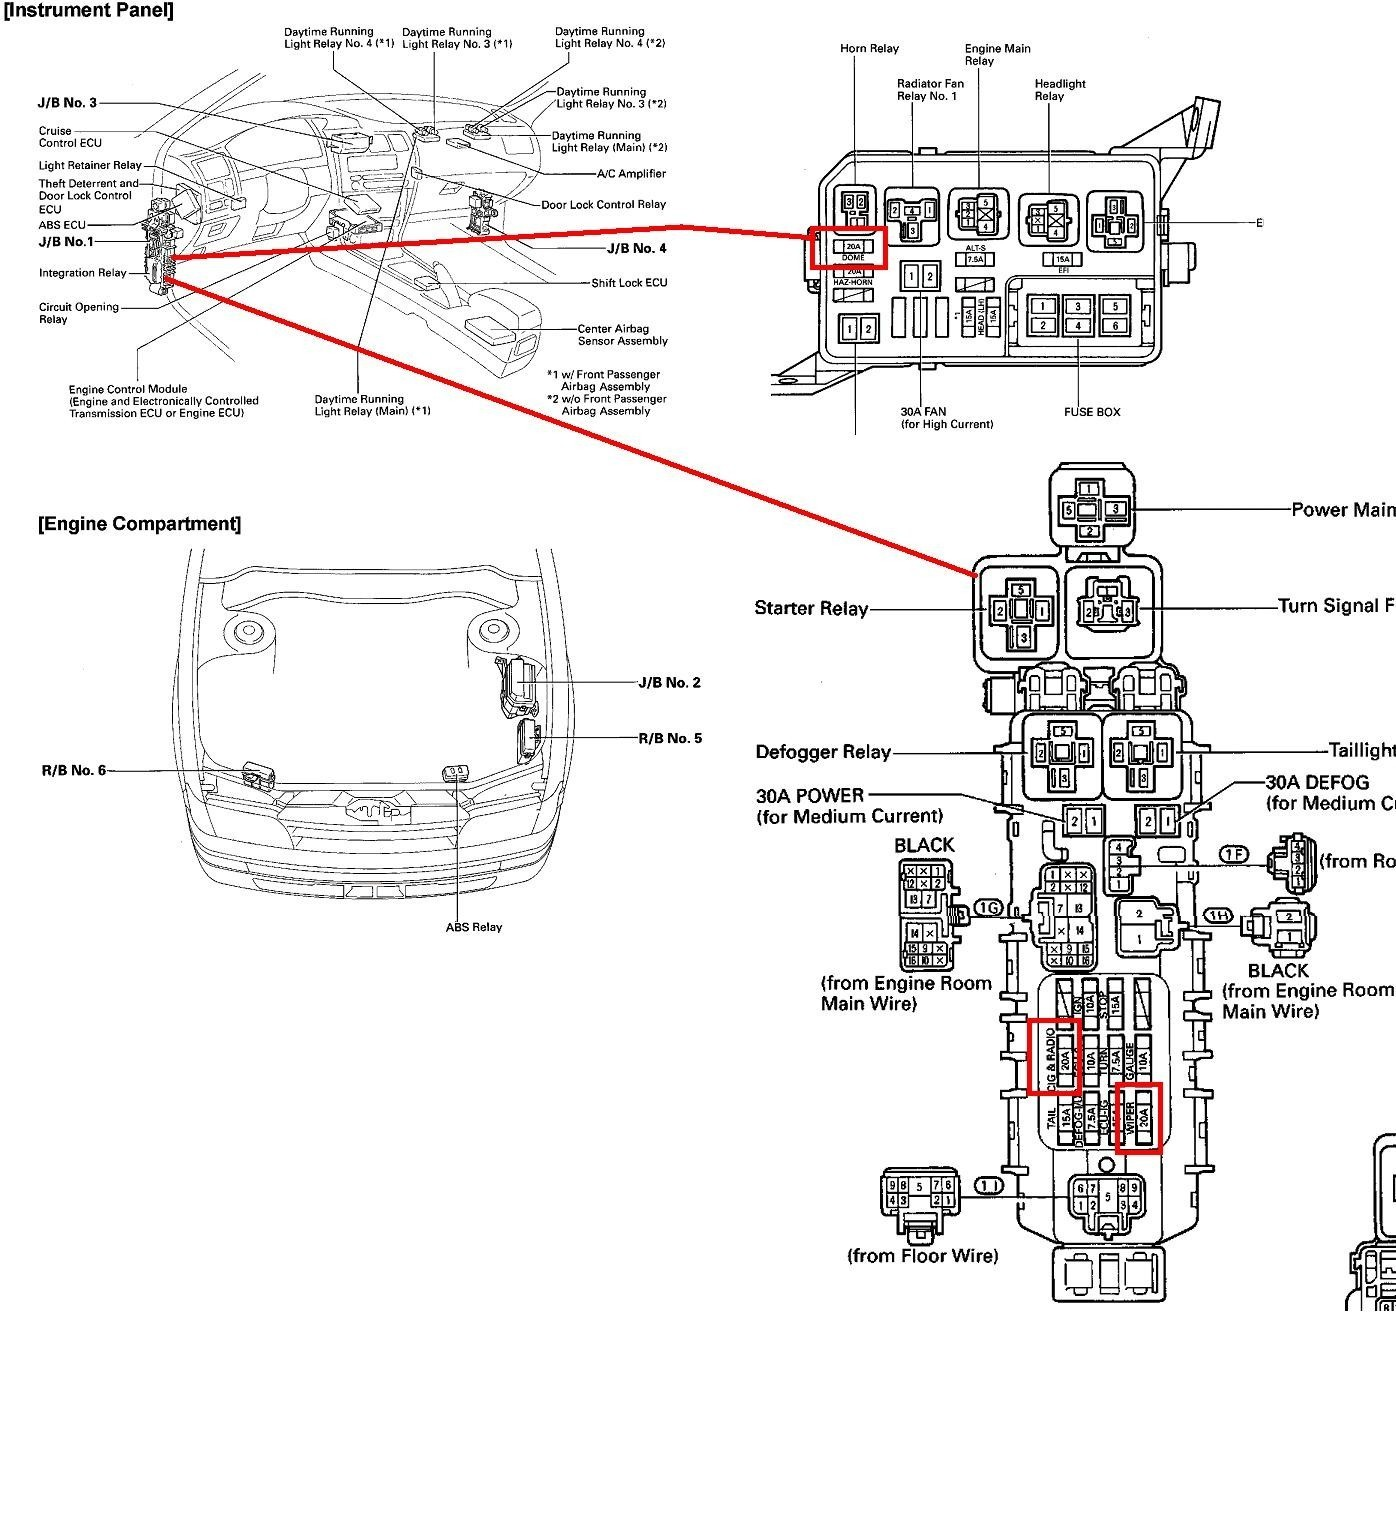 1990 Honda Accord Main Relay Wiring Diagram Library Prius Toyota Engine Check Light Unique 1992 Window